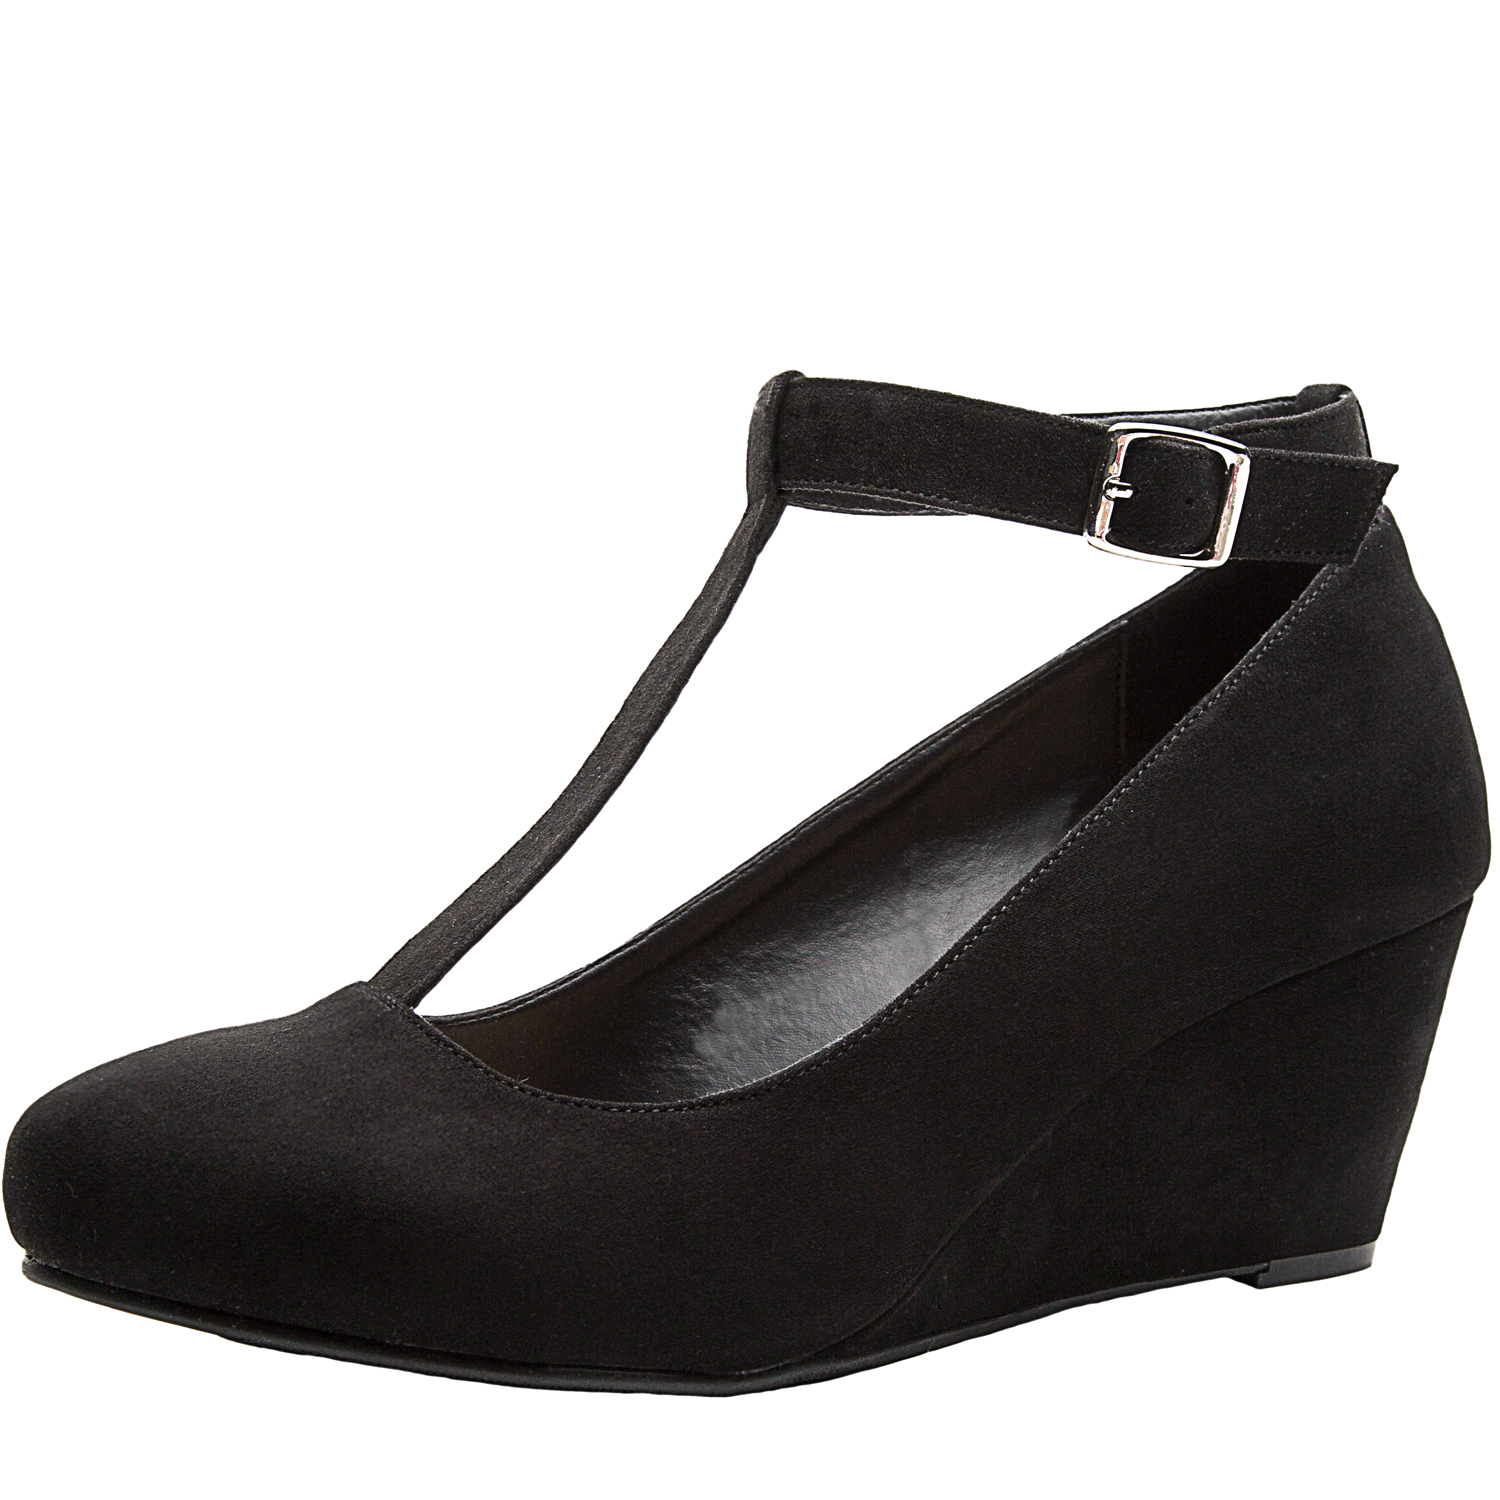 54c05ca2f39 US  39.99 - Luoika Women s Wide Width Wedge Shoes - Mary Jane Heel Pump  with T-Strap. - www.luoika-us.com